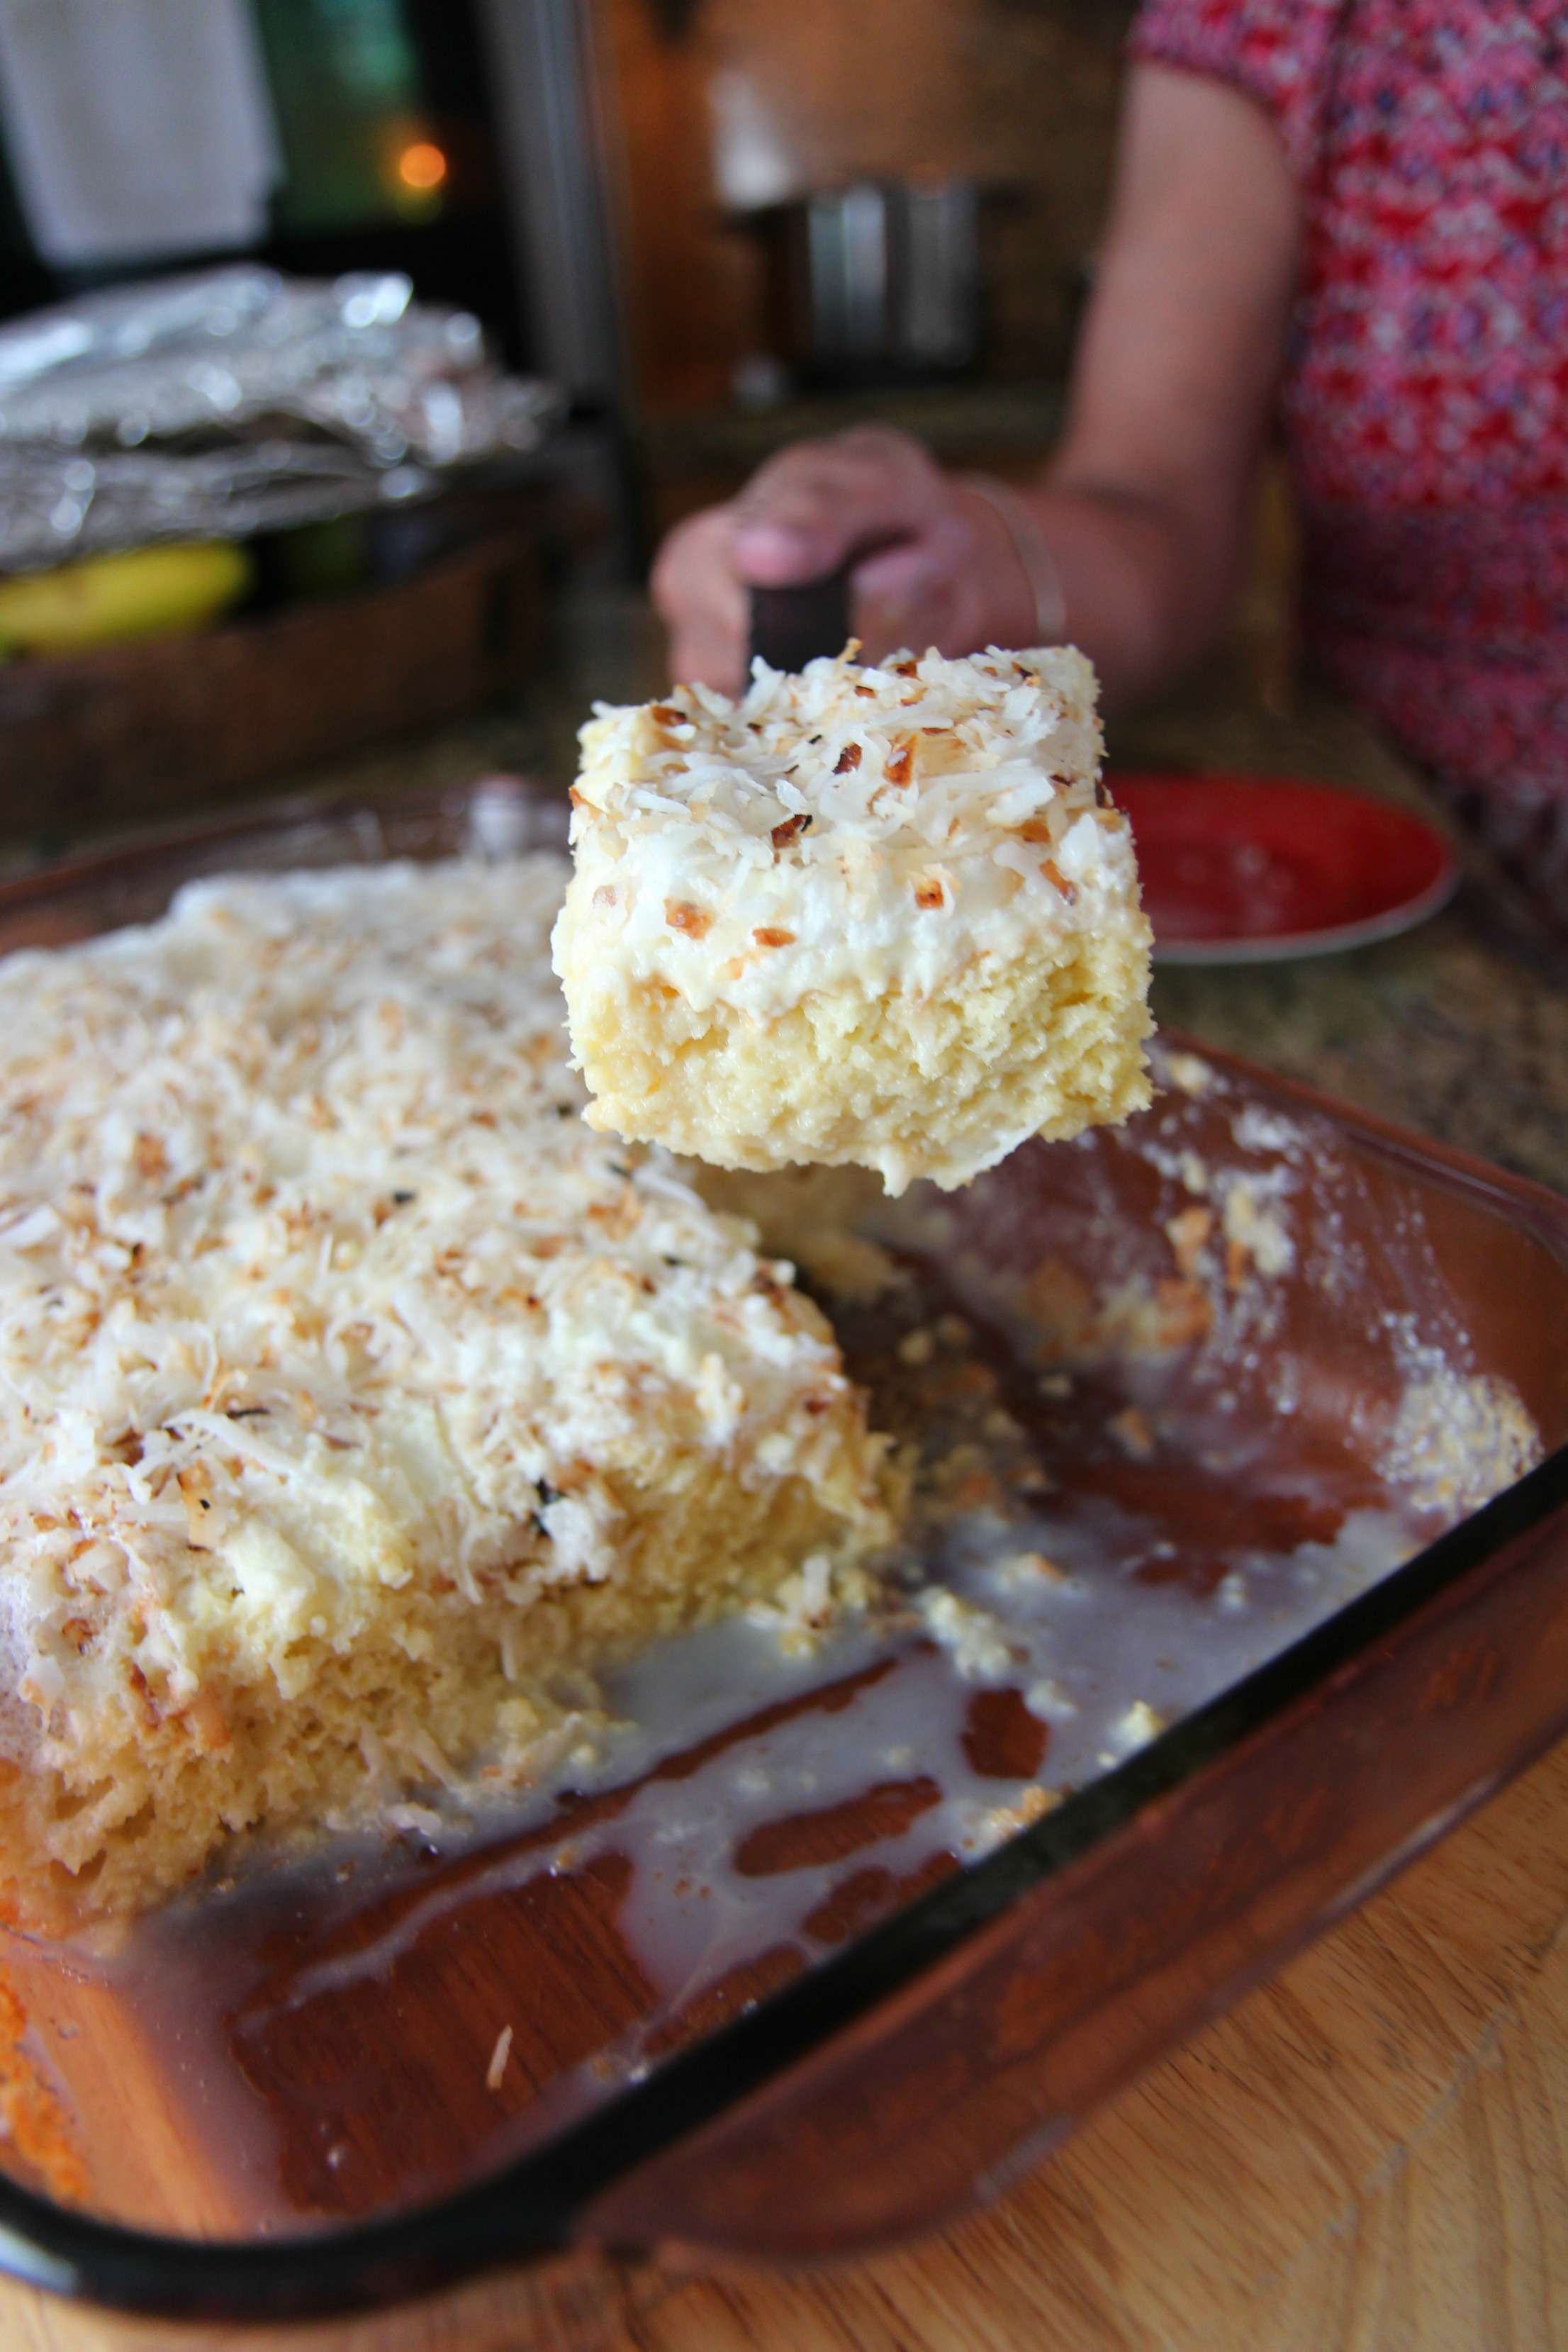 The perfect slice of coconut tres leches cake.